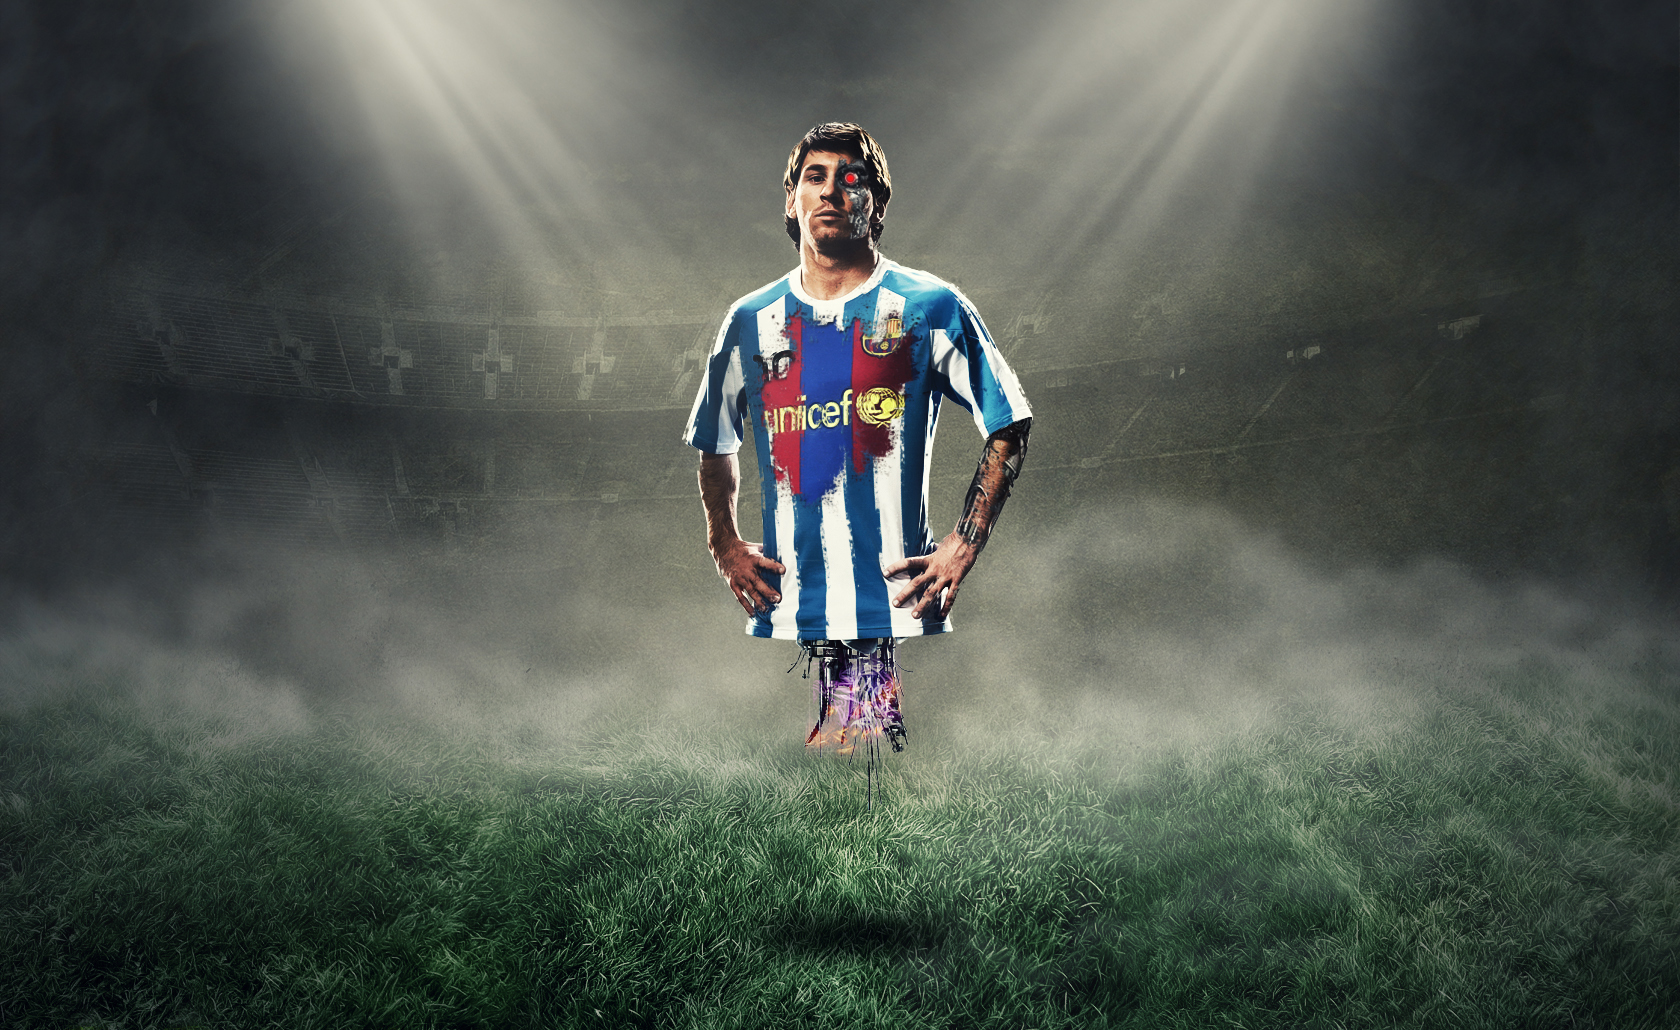 Adidas Football Wallpaper Messi images 1680x1030